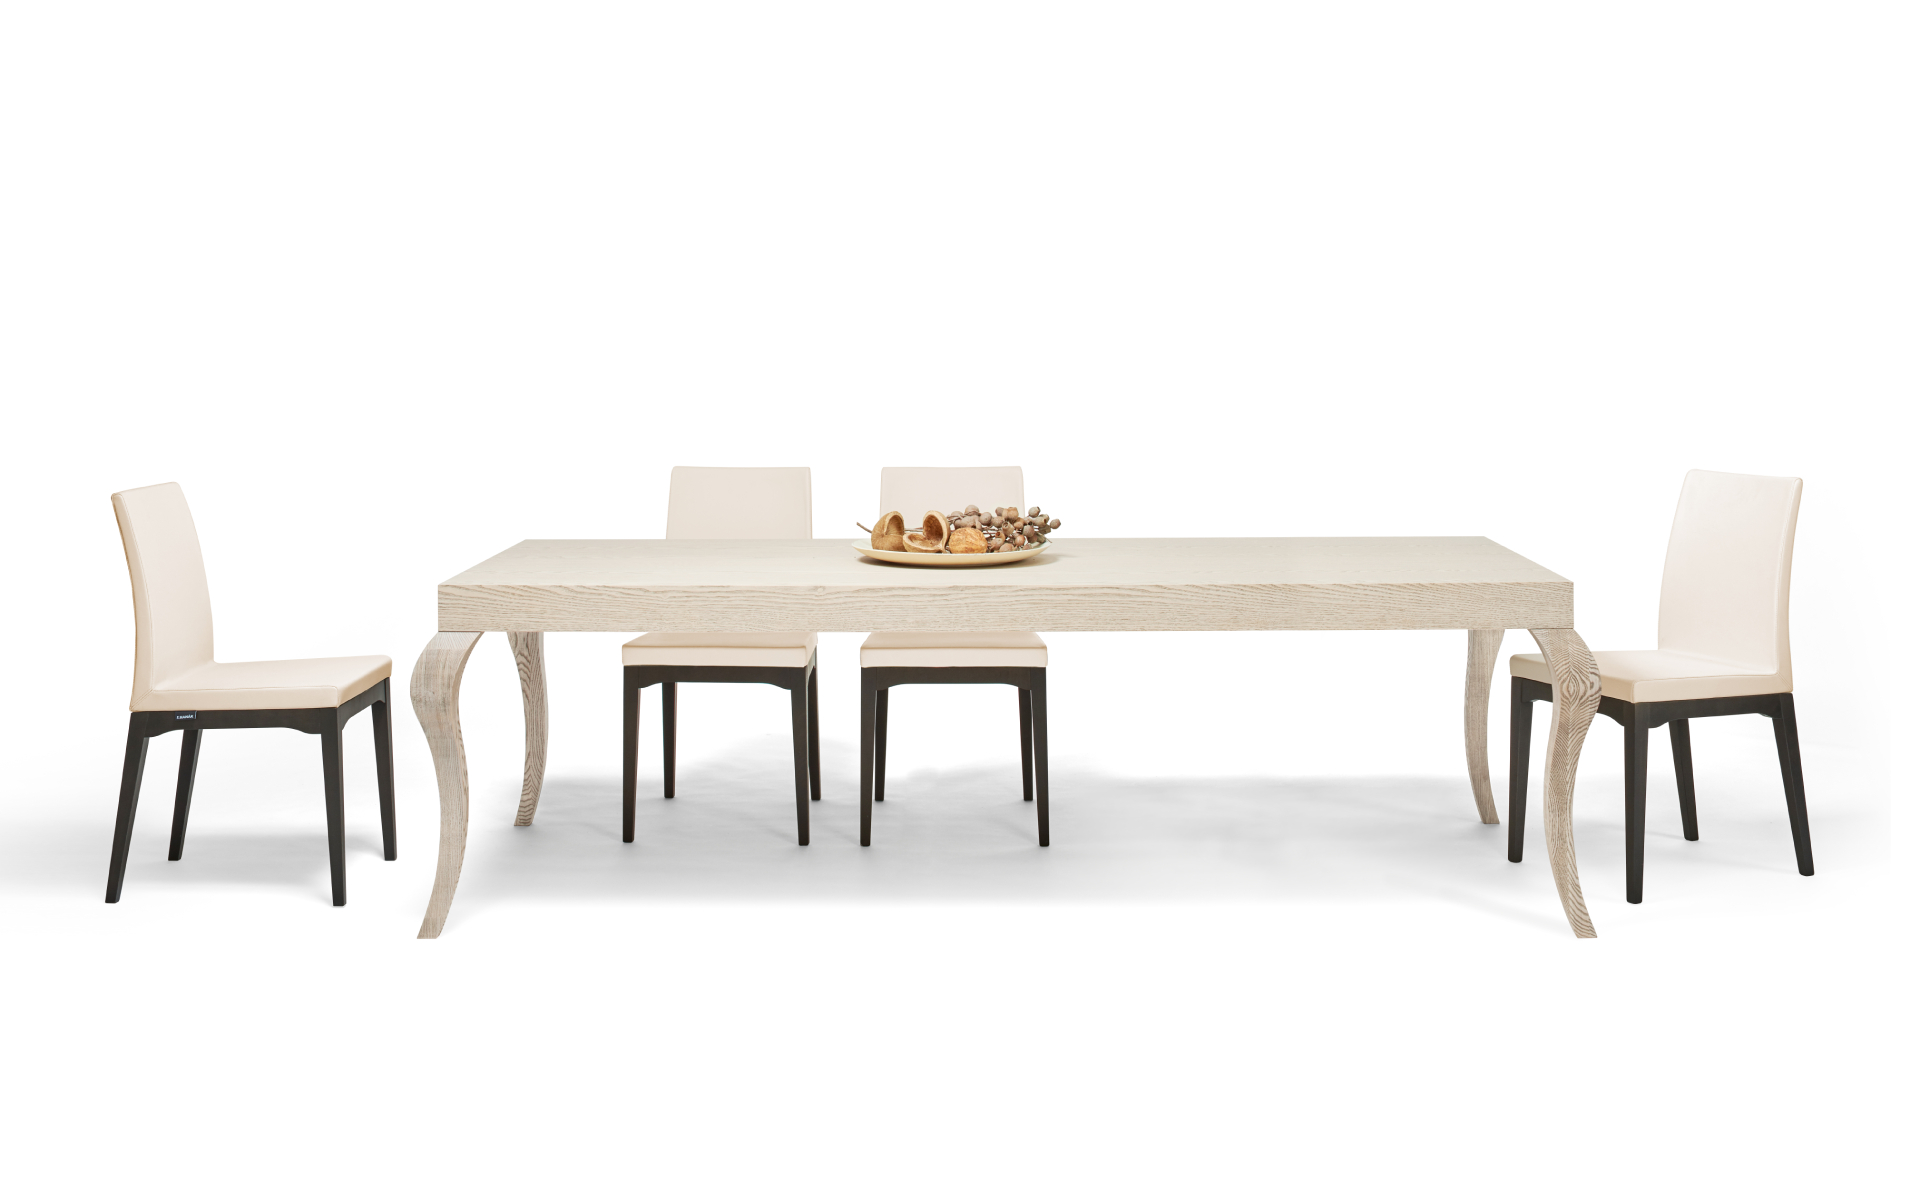 JS23 dining table